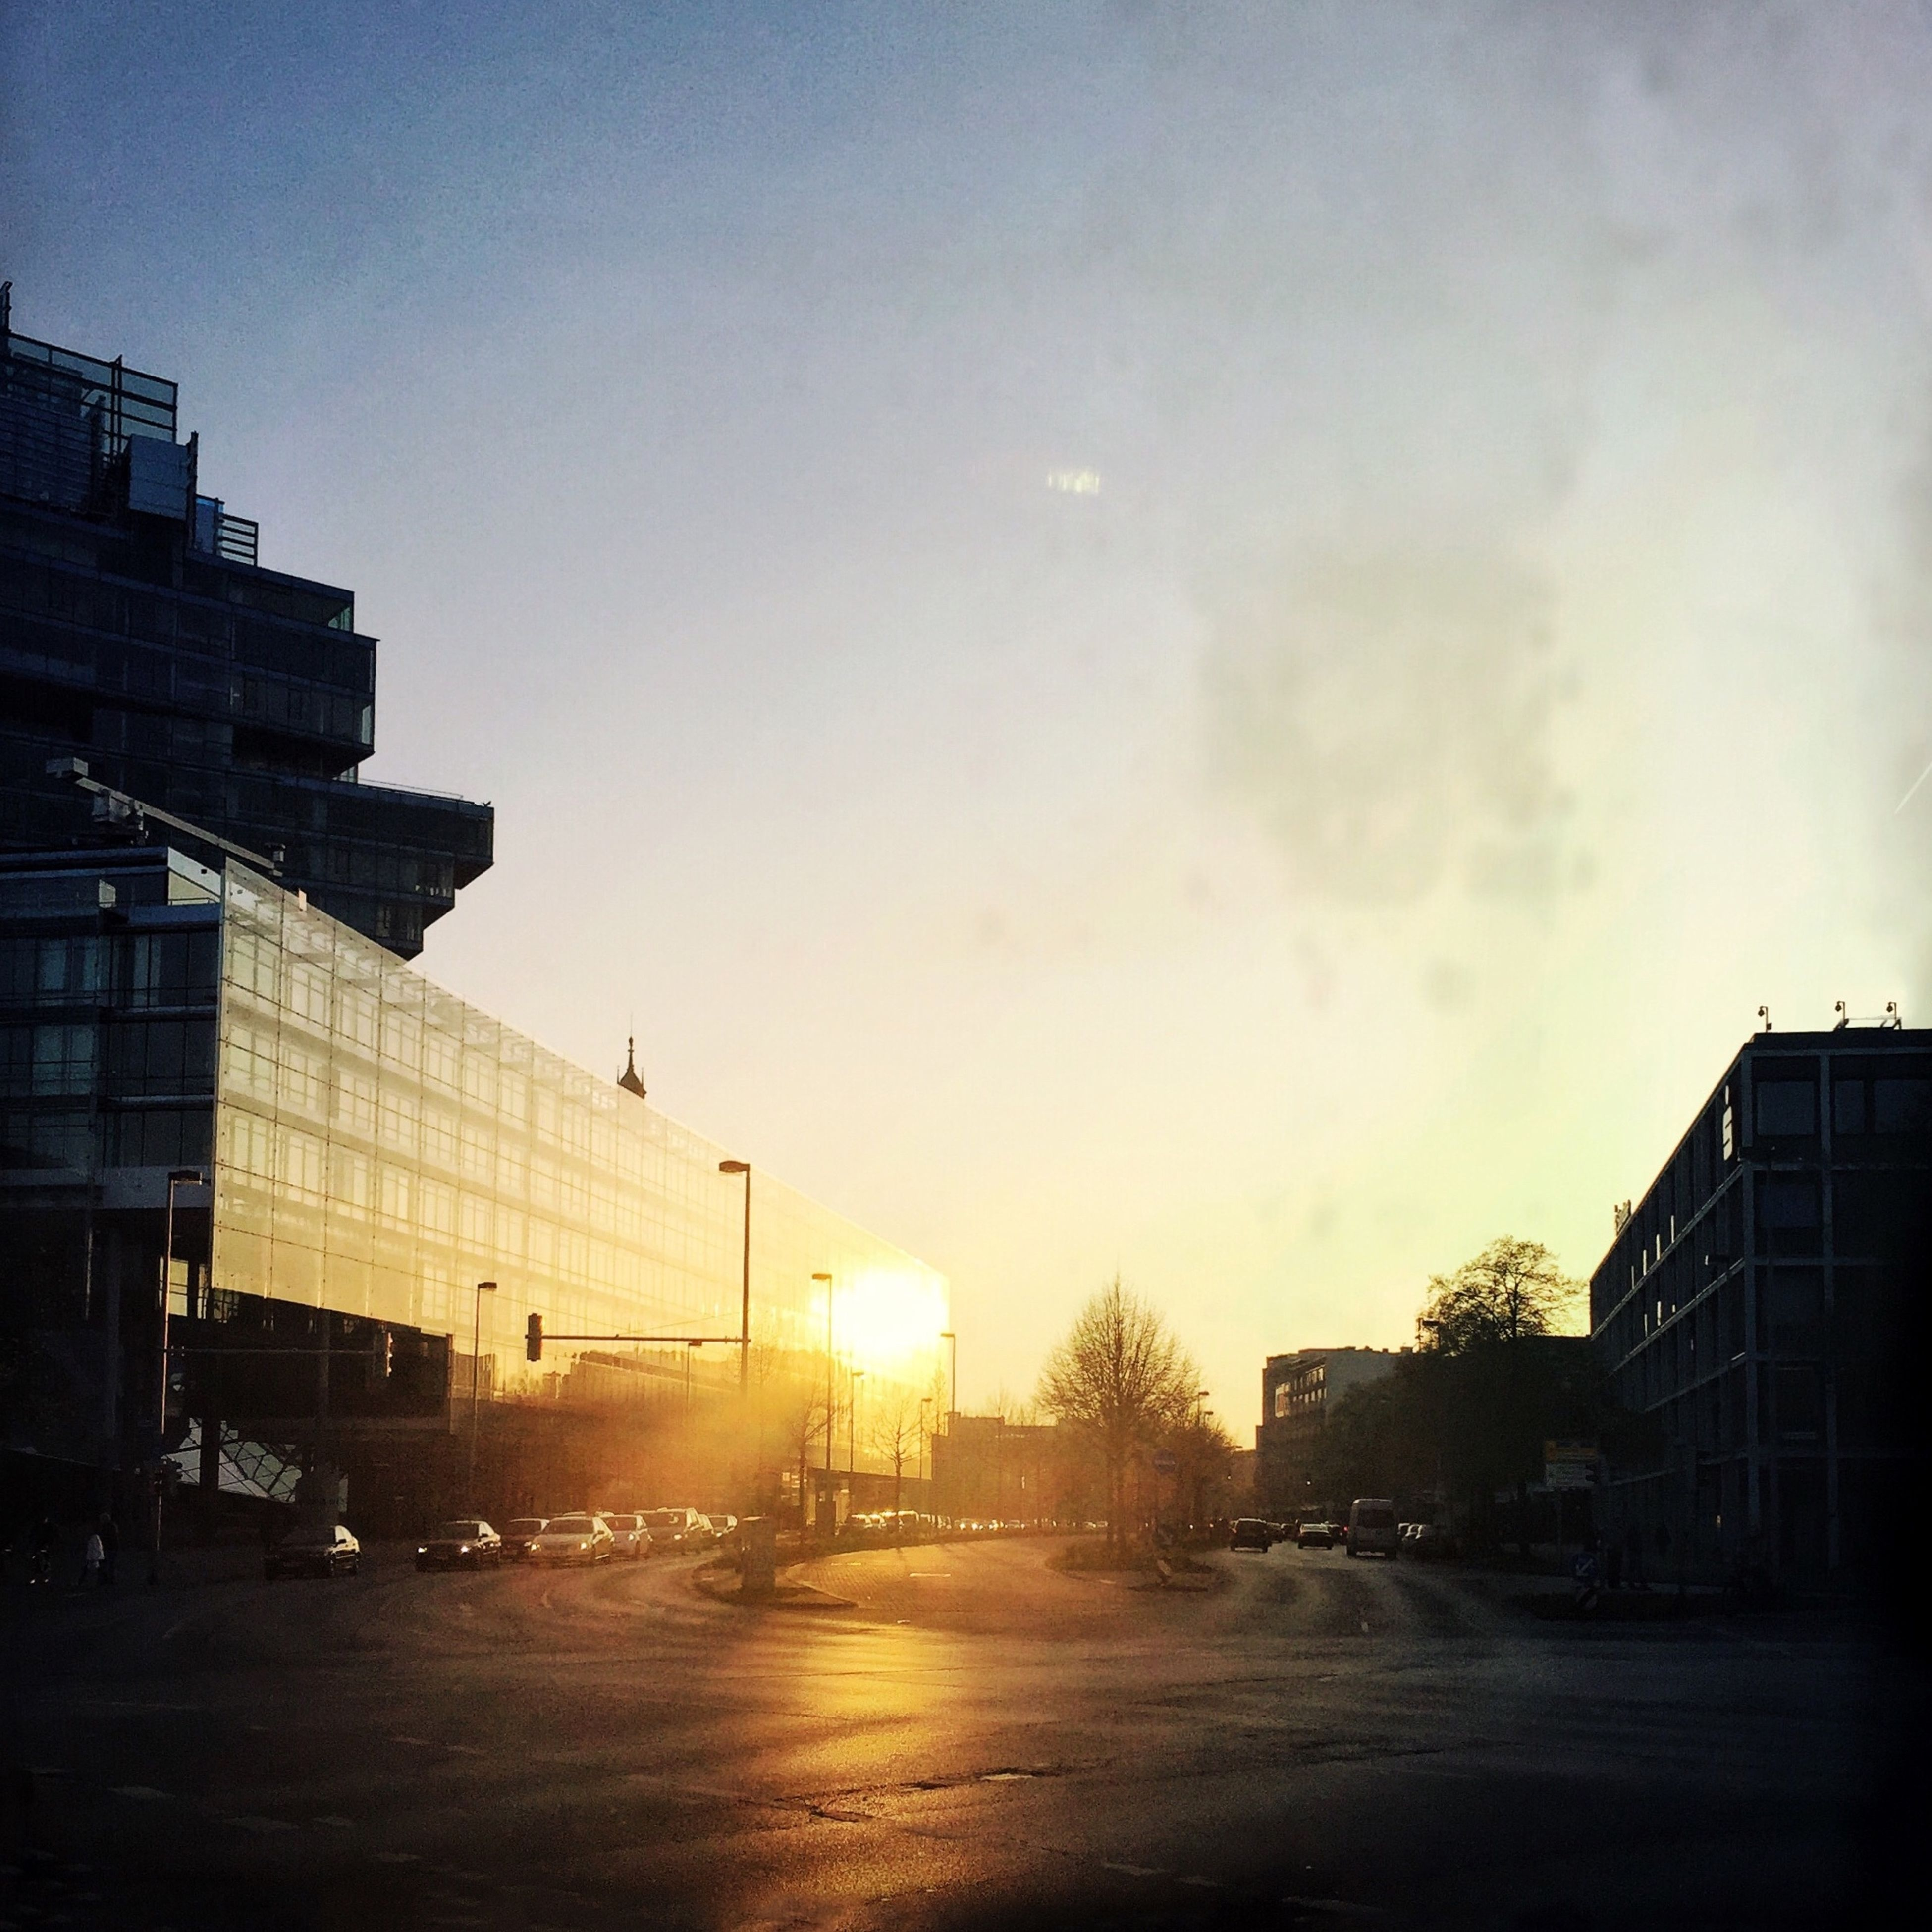 building exterior, architecture, built structure, sun, sunset, sky, city, street, sunlight, road, building, lens flare, car, sunbeam, transportation, silhouette, residential building, street light, outdoors, residential structure